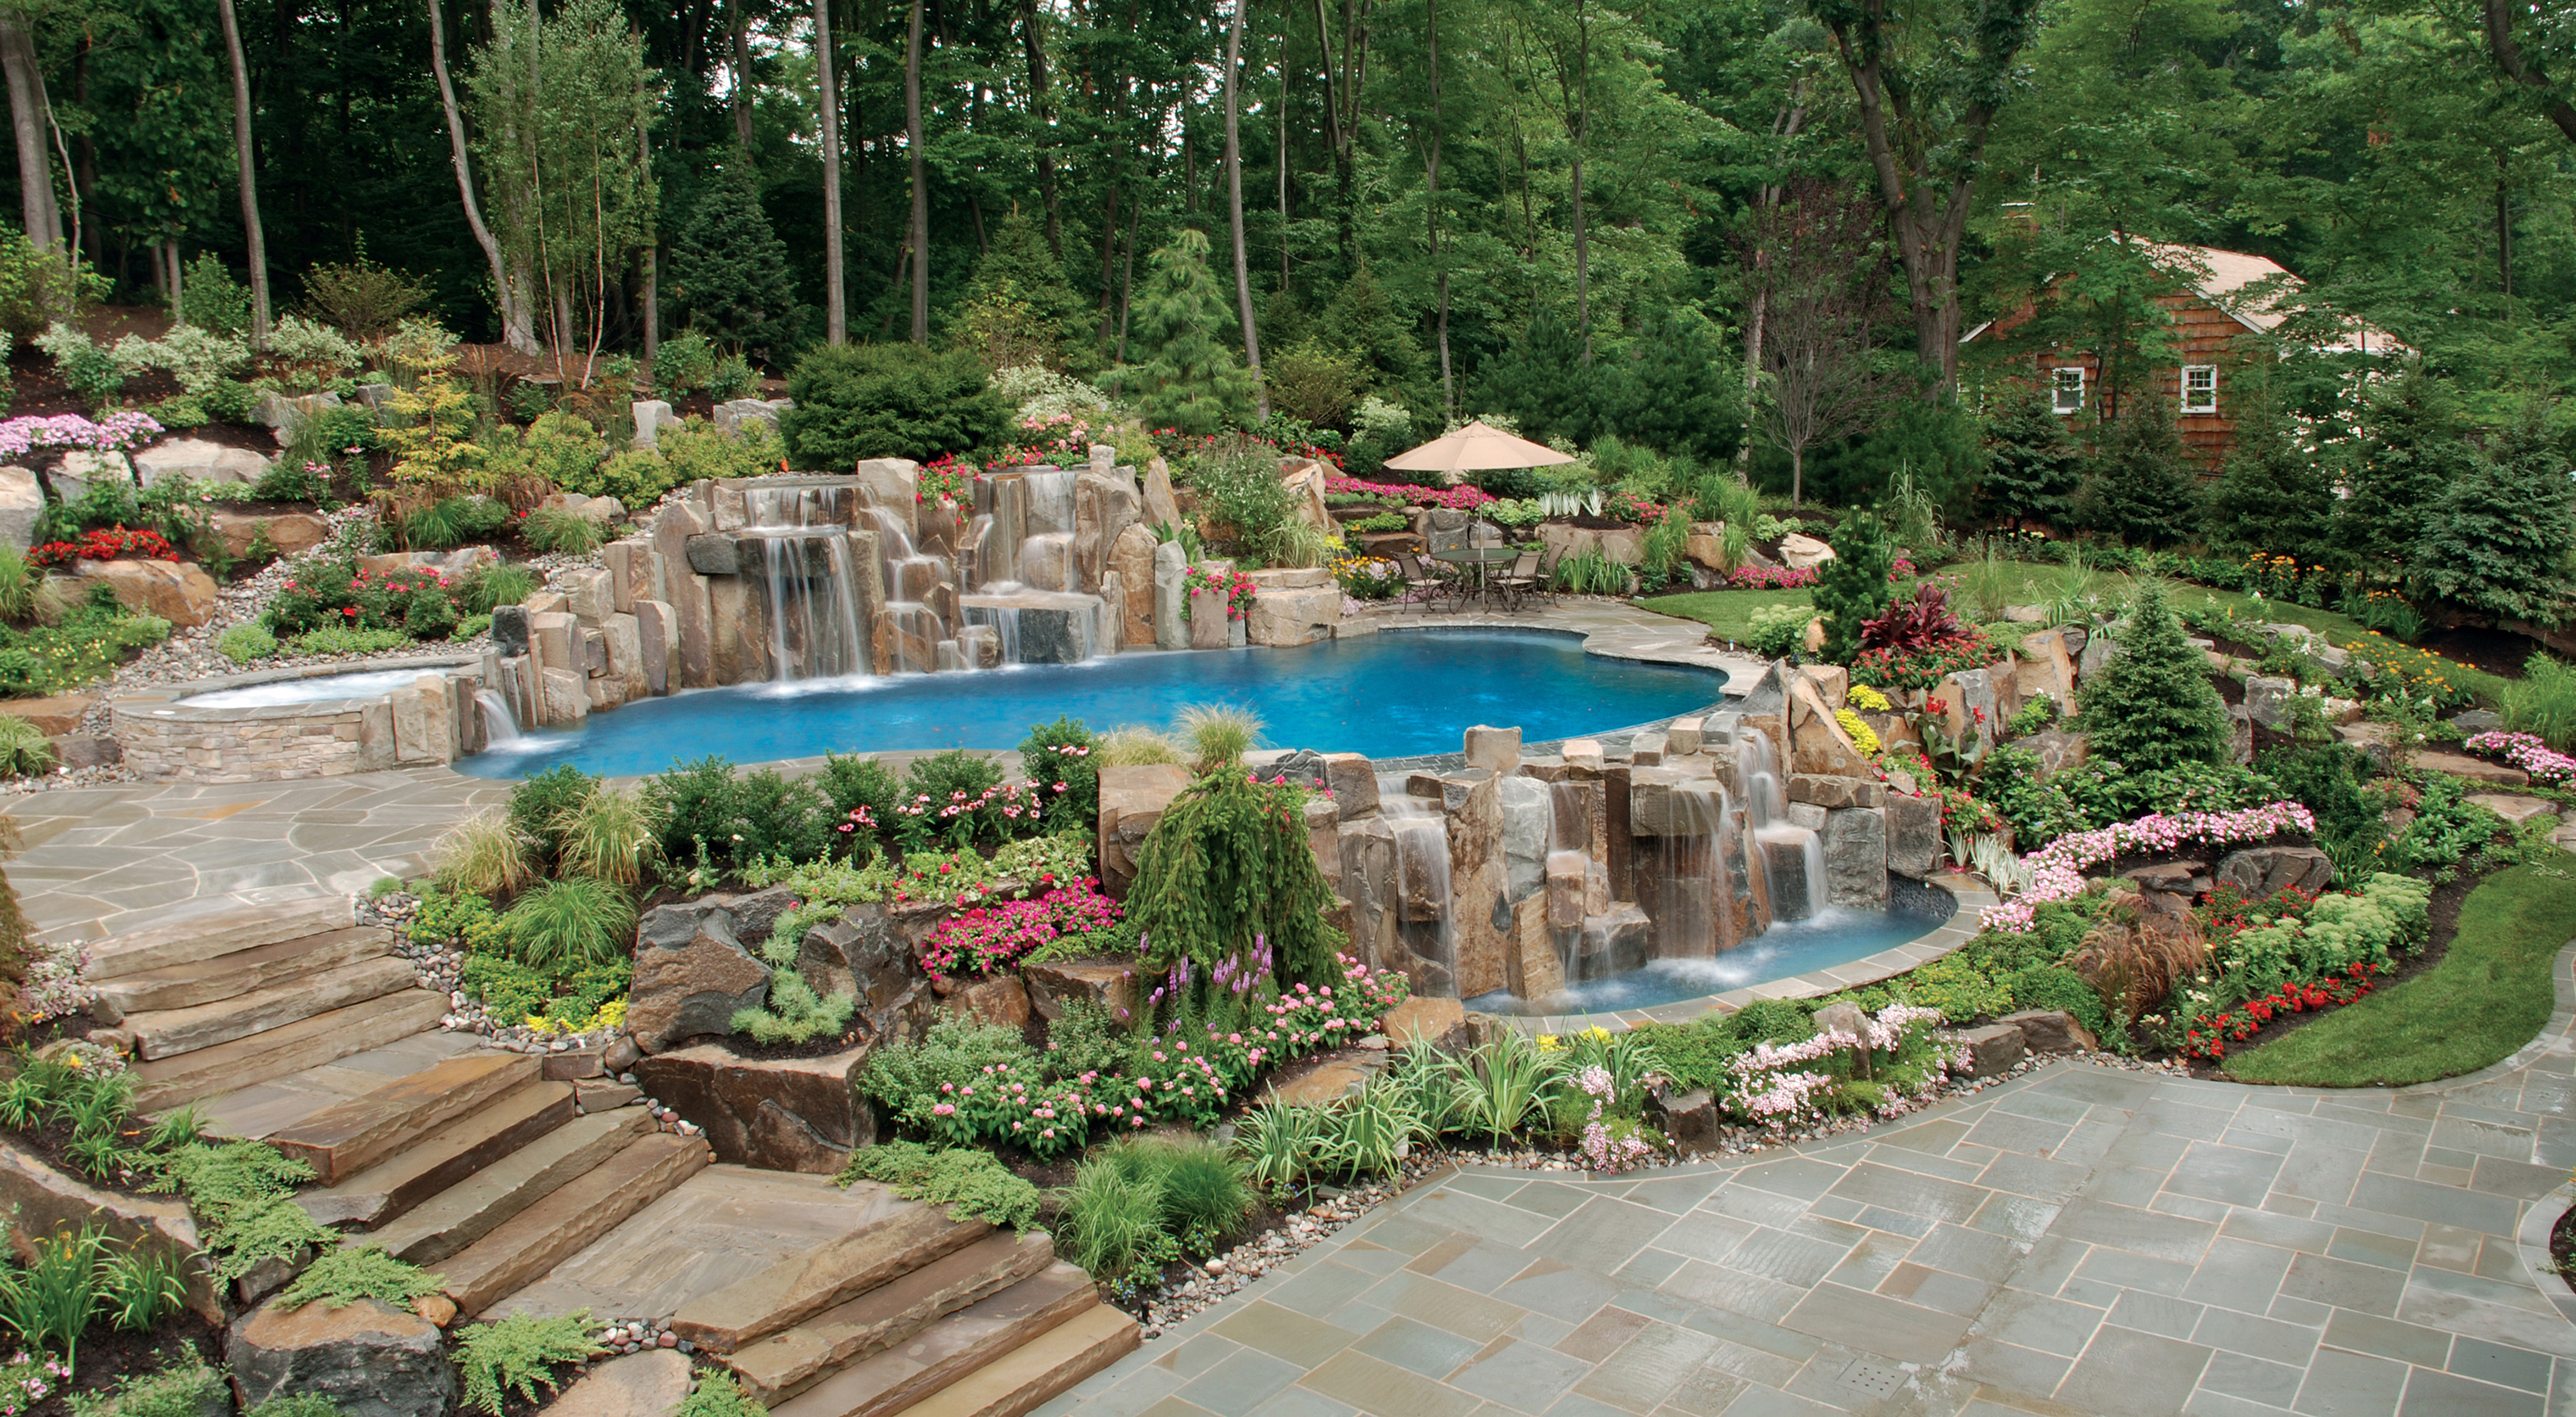 backyard hardscape backyard hardscape designs - Hardscape Design Ideas